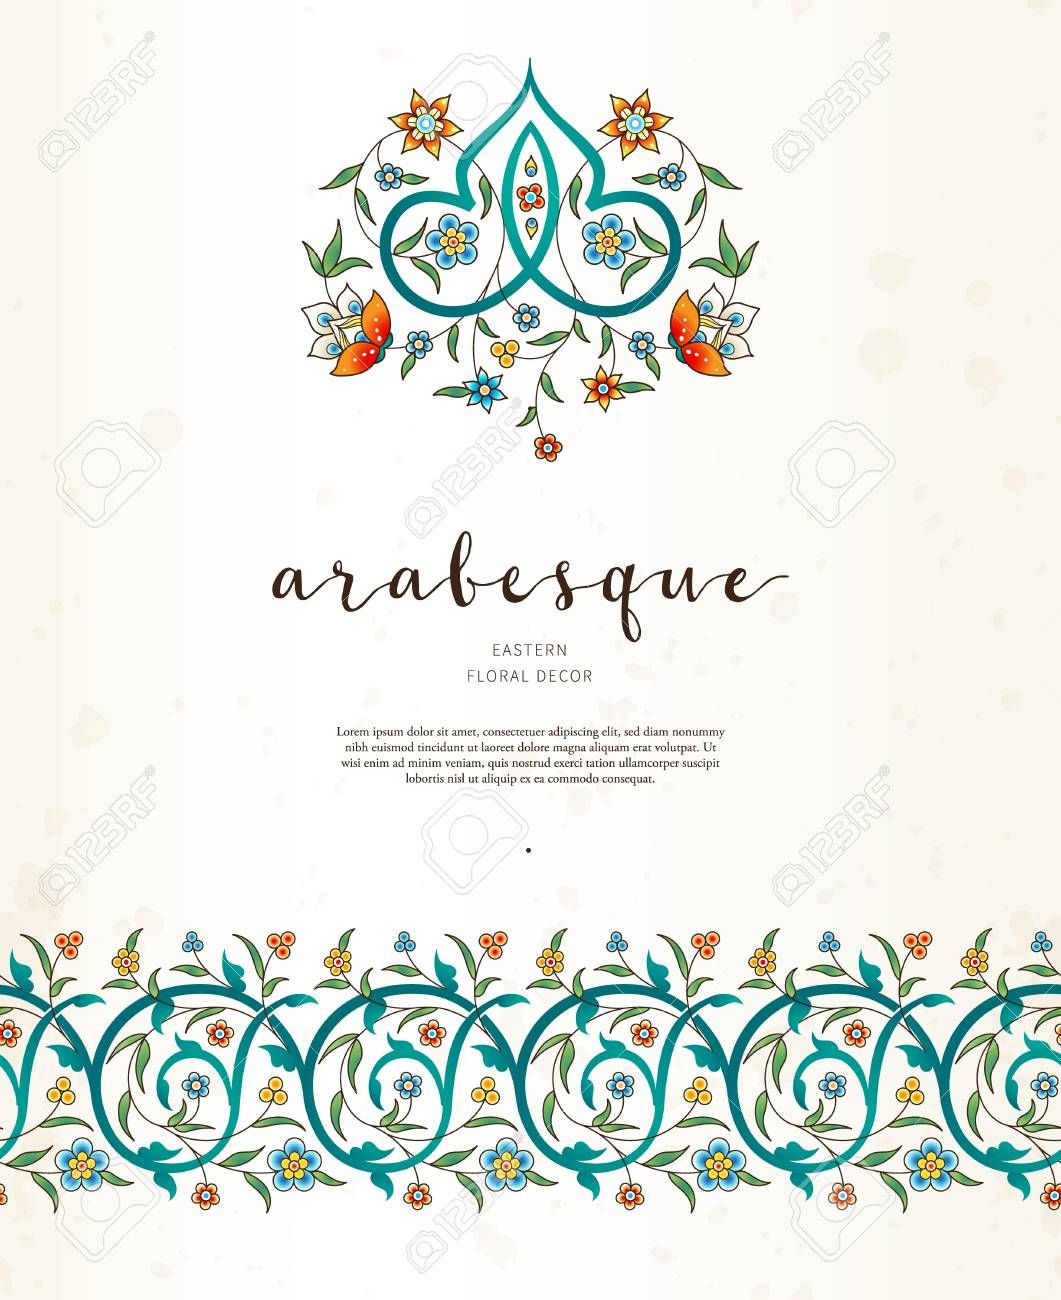 Stock Photo Eastern Floral Place Card Holders Arabesque